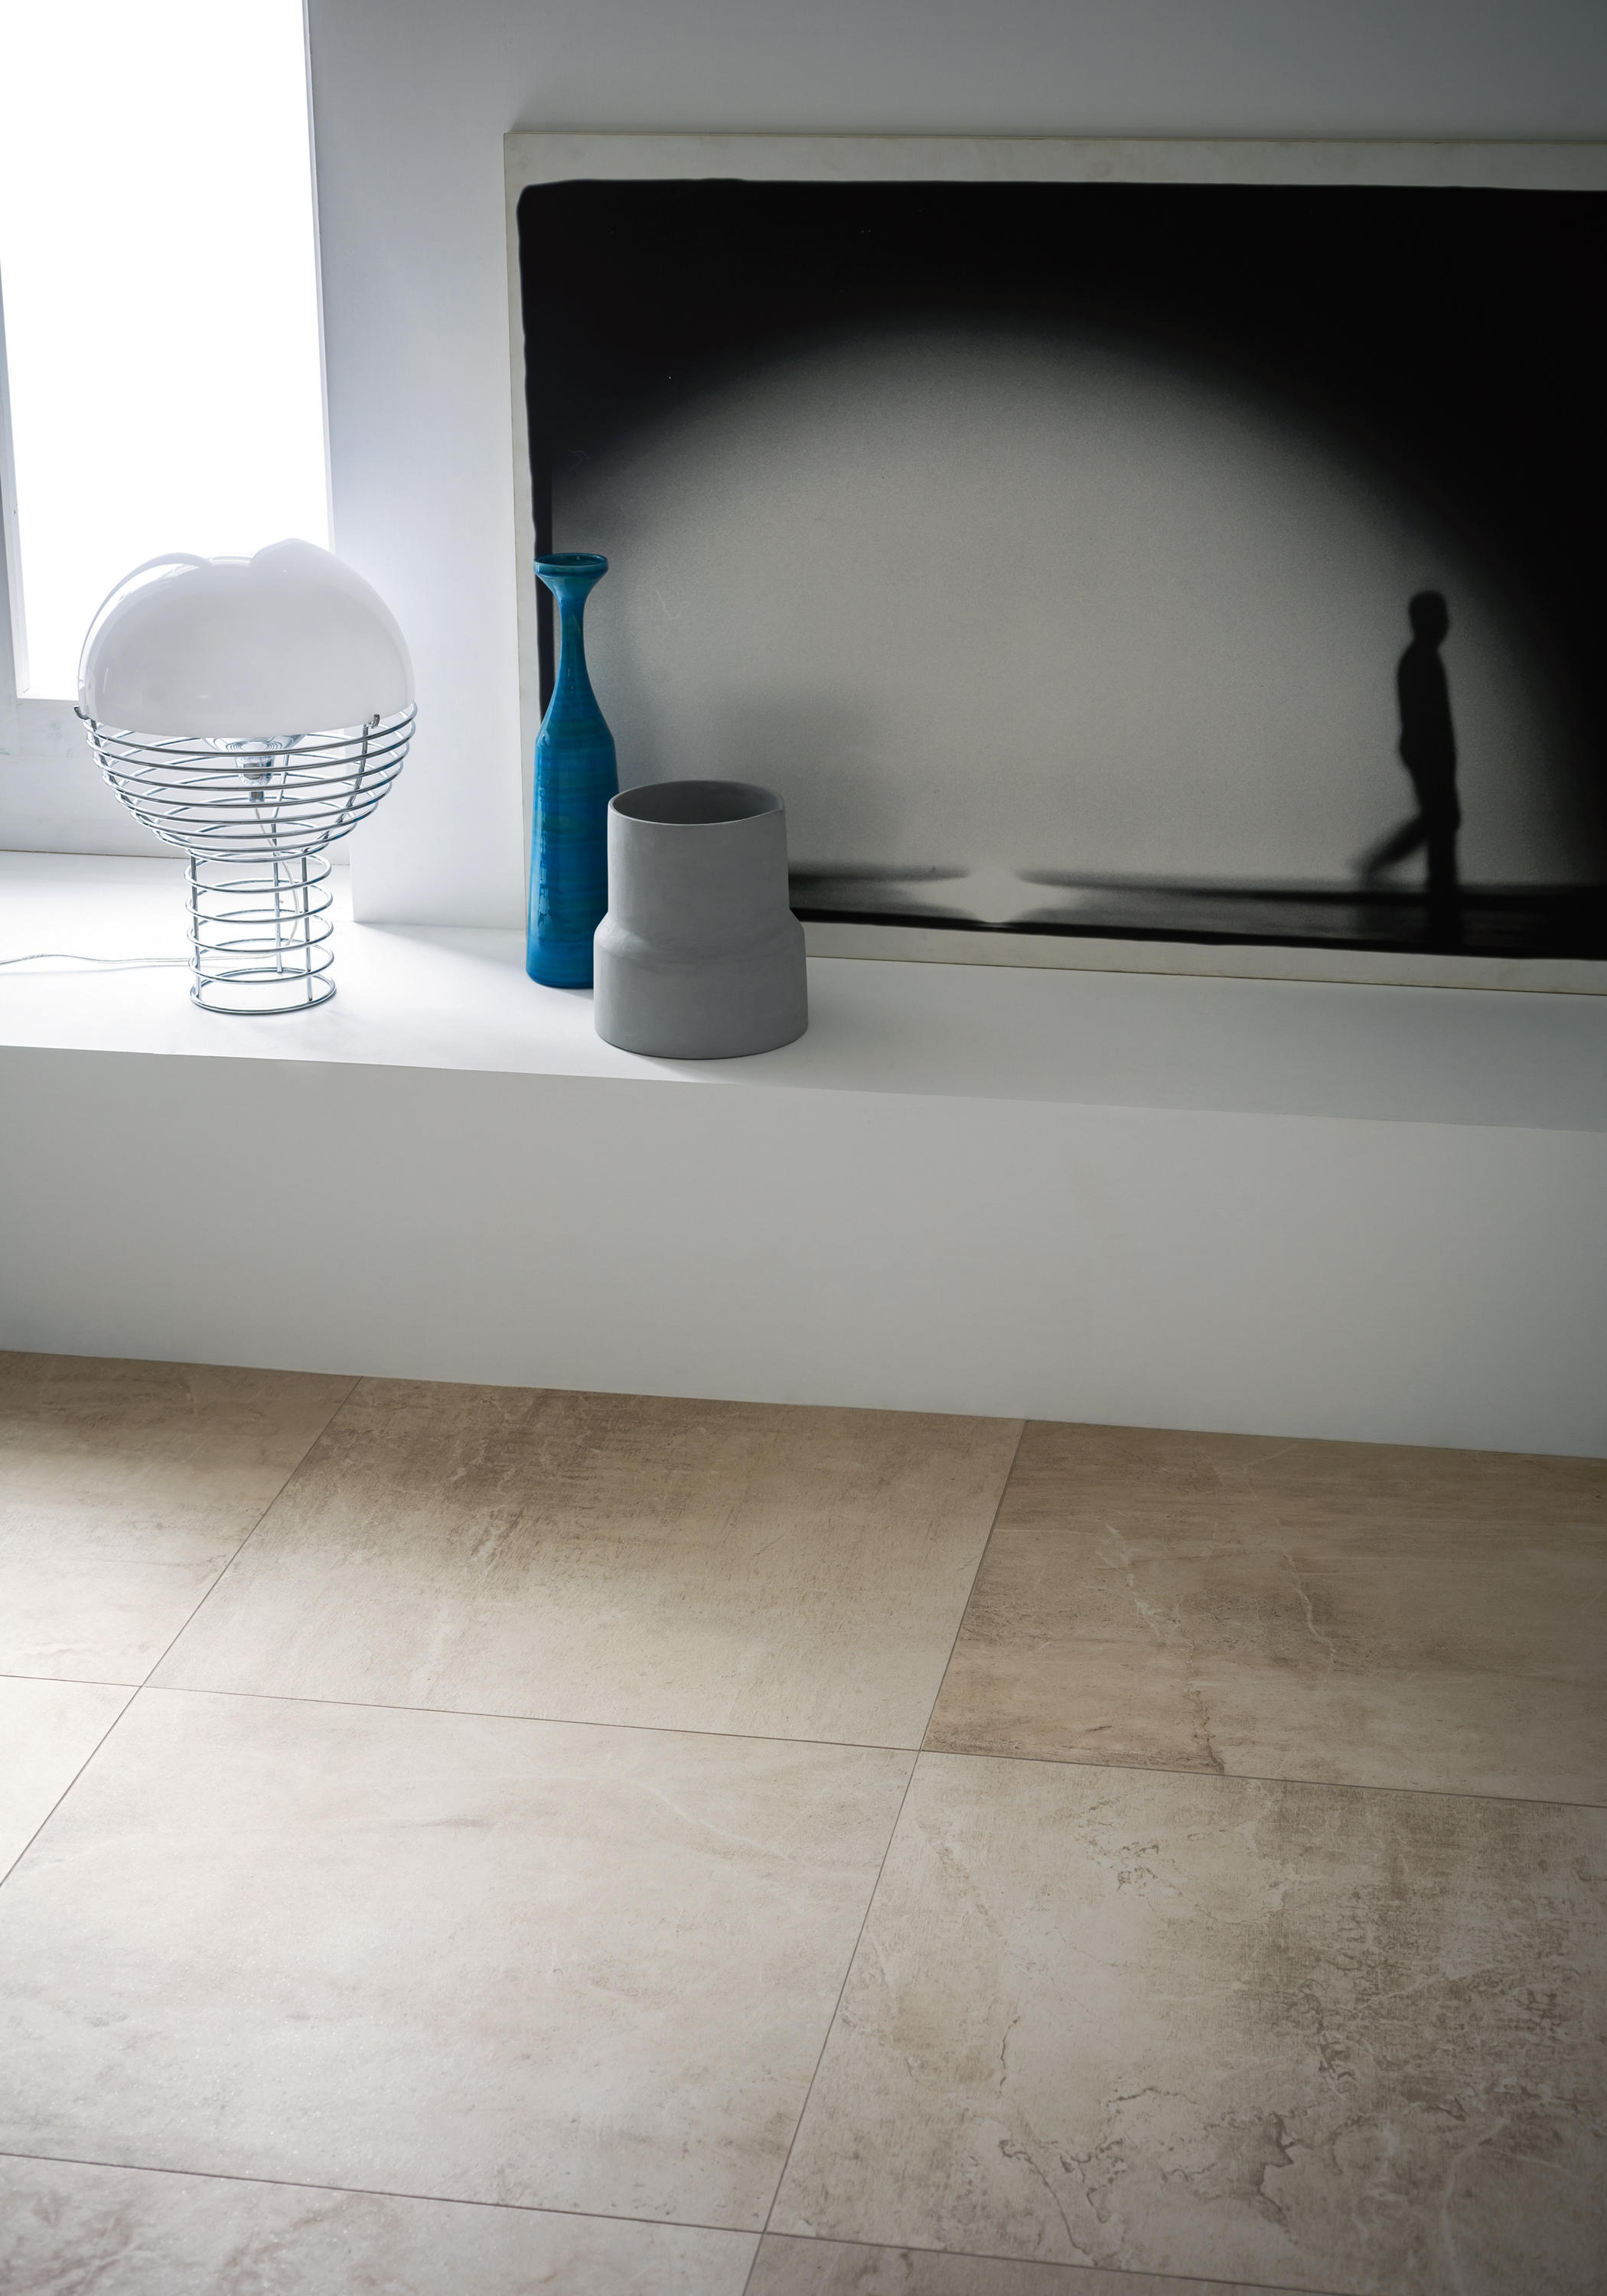 Blend Cream Ceramic Tiles From Marazzi Group Architonic - Piastrelle Marazzi Serie Blend